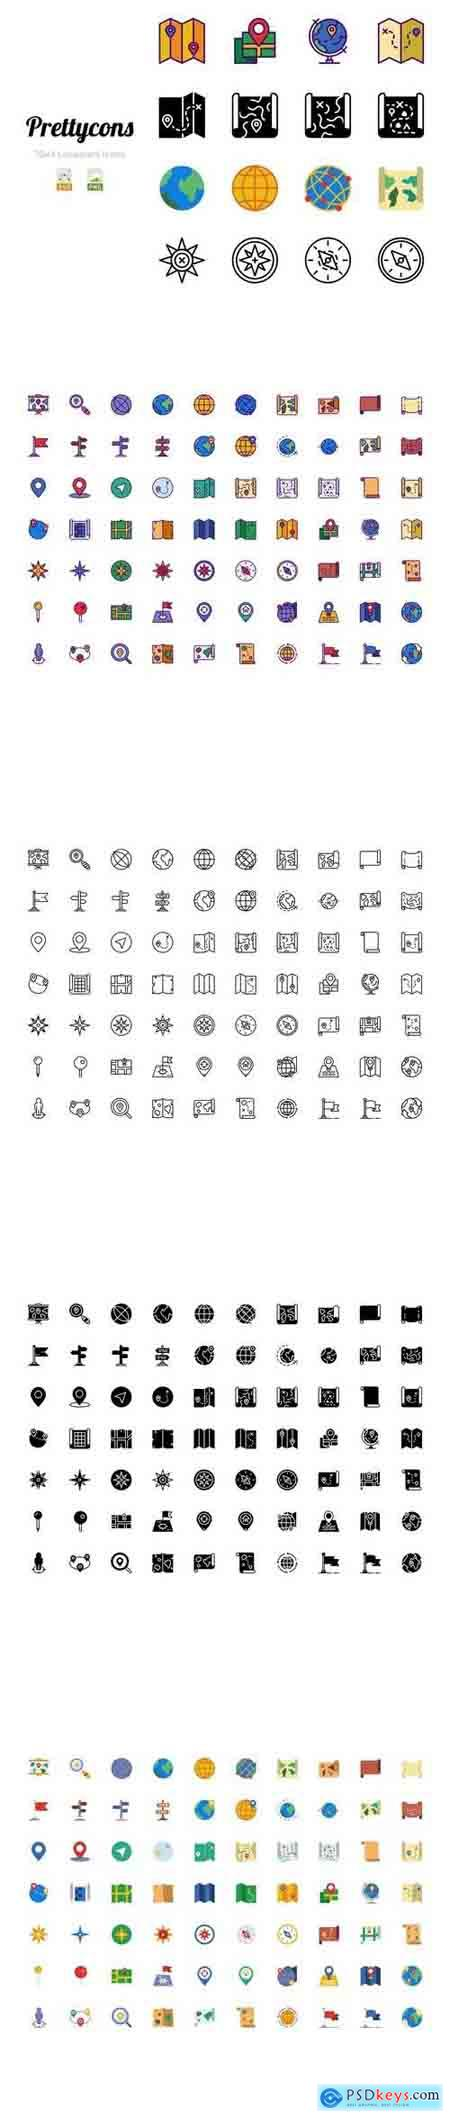 Prettycons - 280 Locations Icons Vol.1